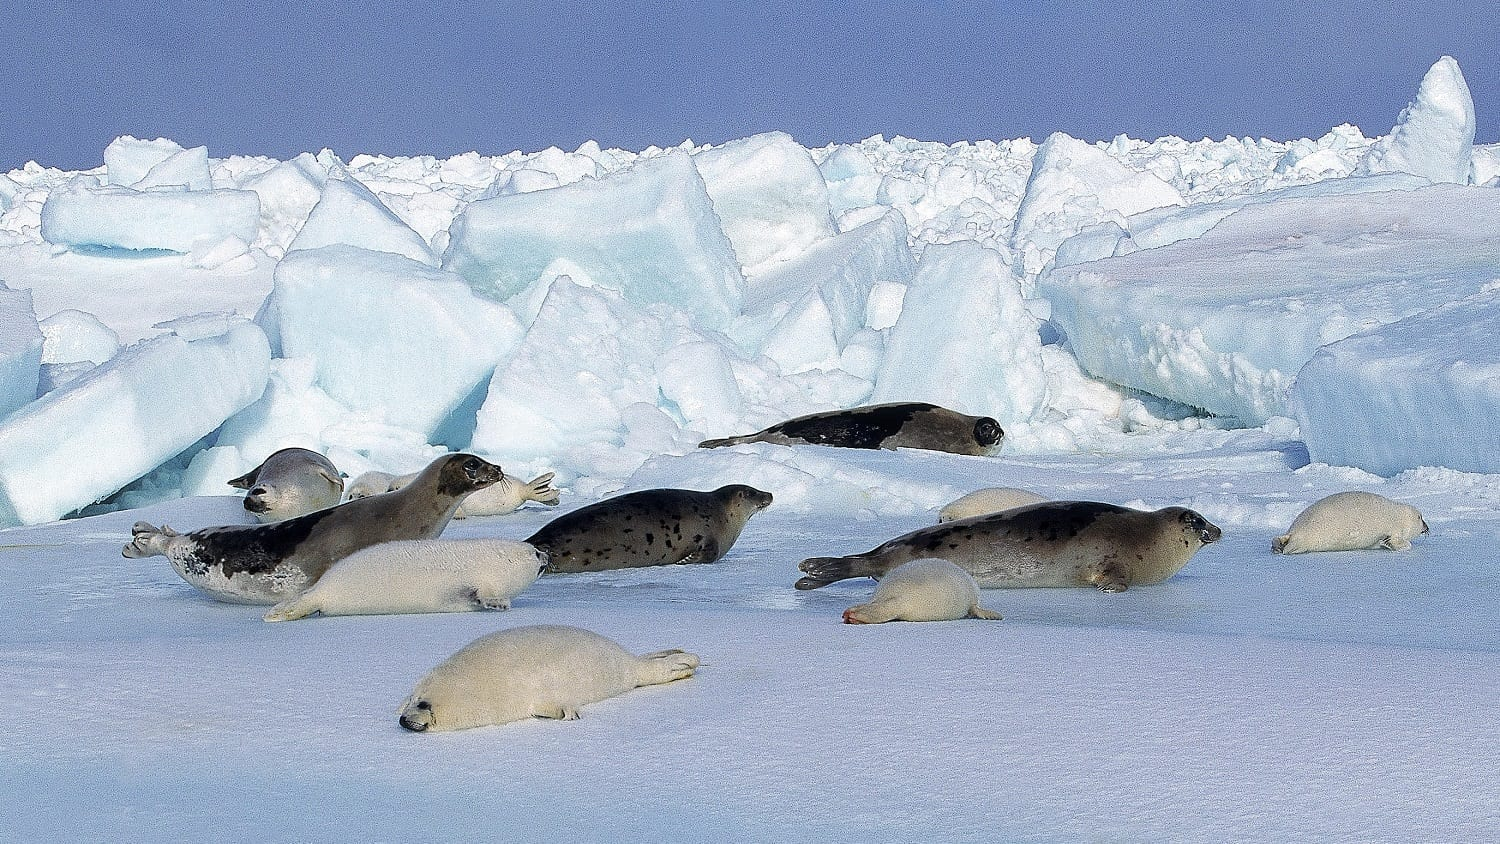 Harp seals on ice, Magdalena Island, CA: ID 194423155 © Slowmotiongli | Dreamstime.com